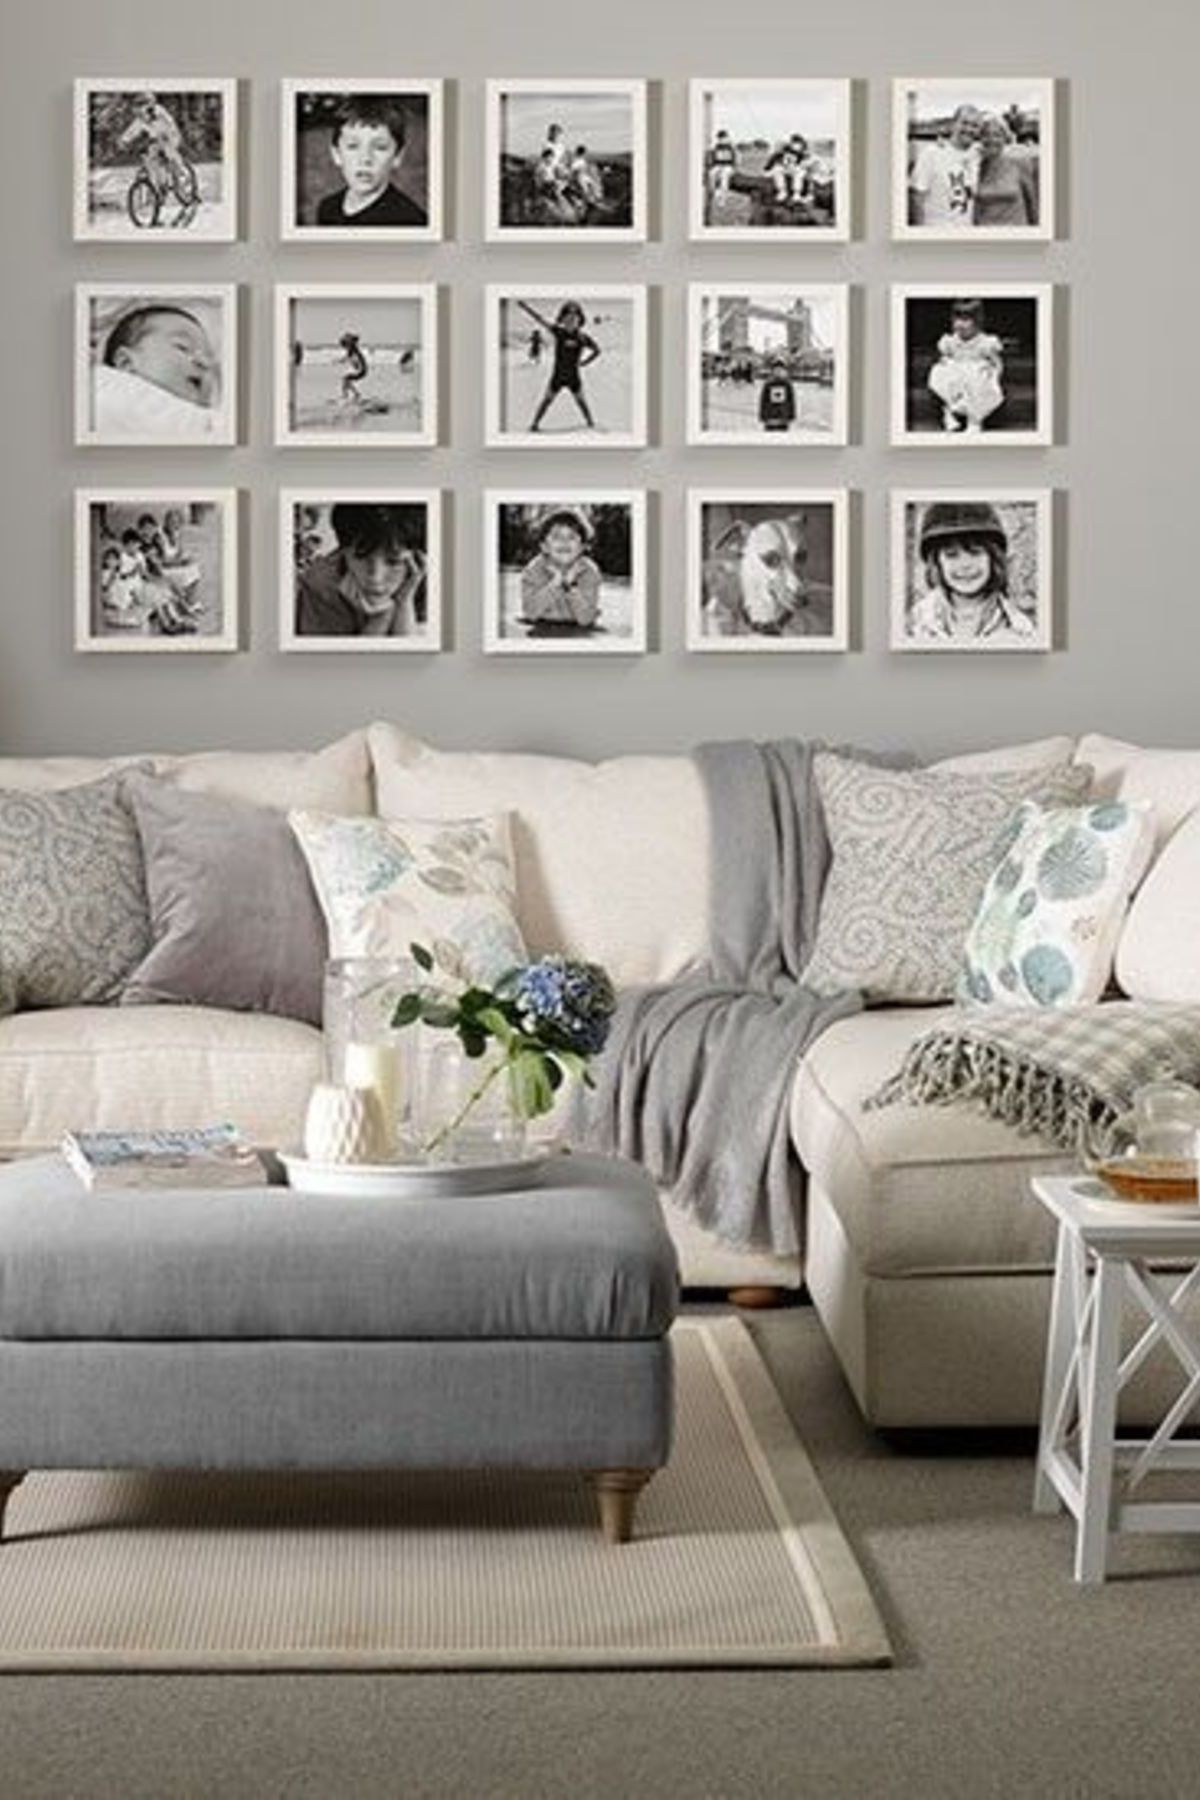 Grey Living Room Decor Ideas Healthy Wealthy Skinny Living Room Decor Gray Small Living Room Design Grey Walls Living Room